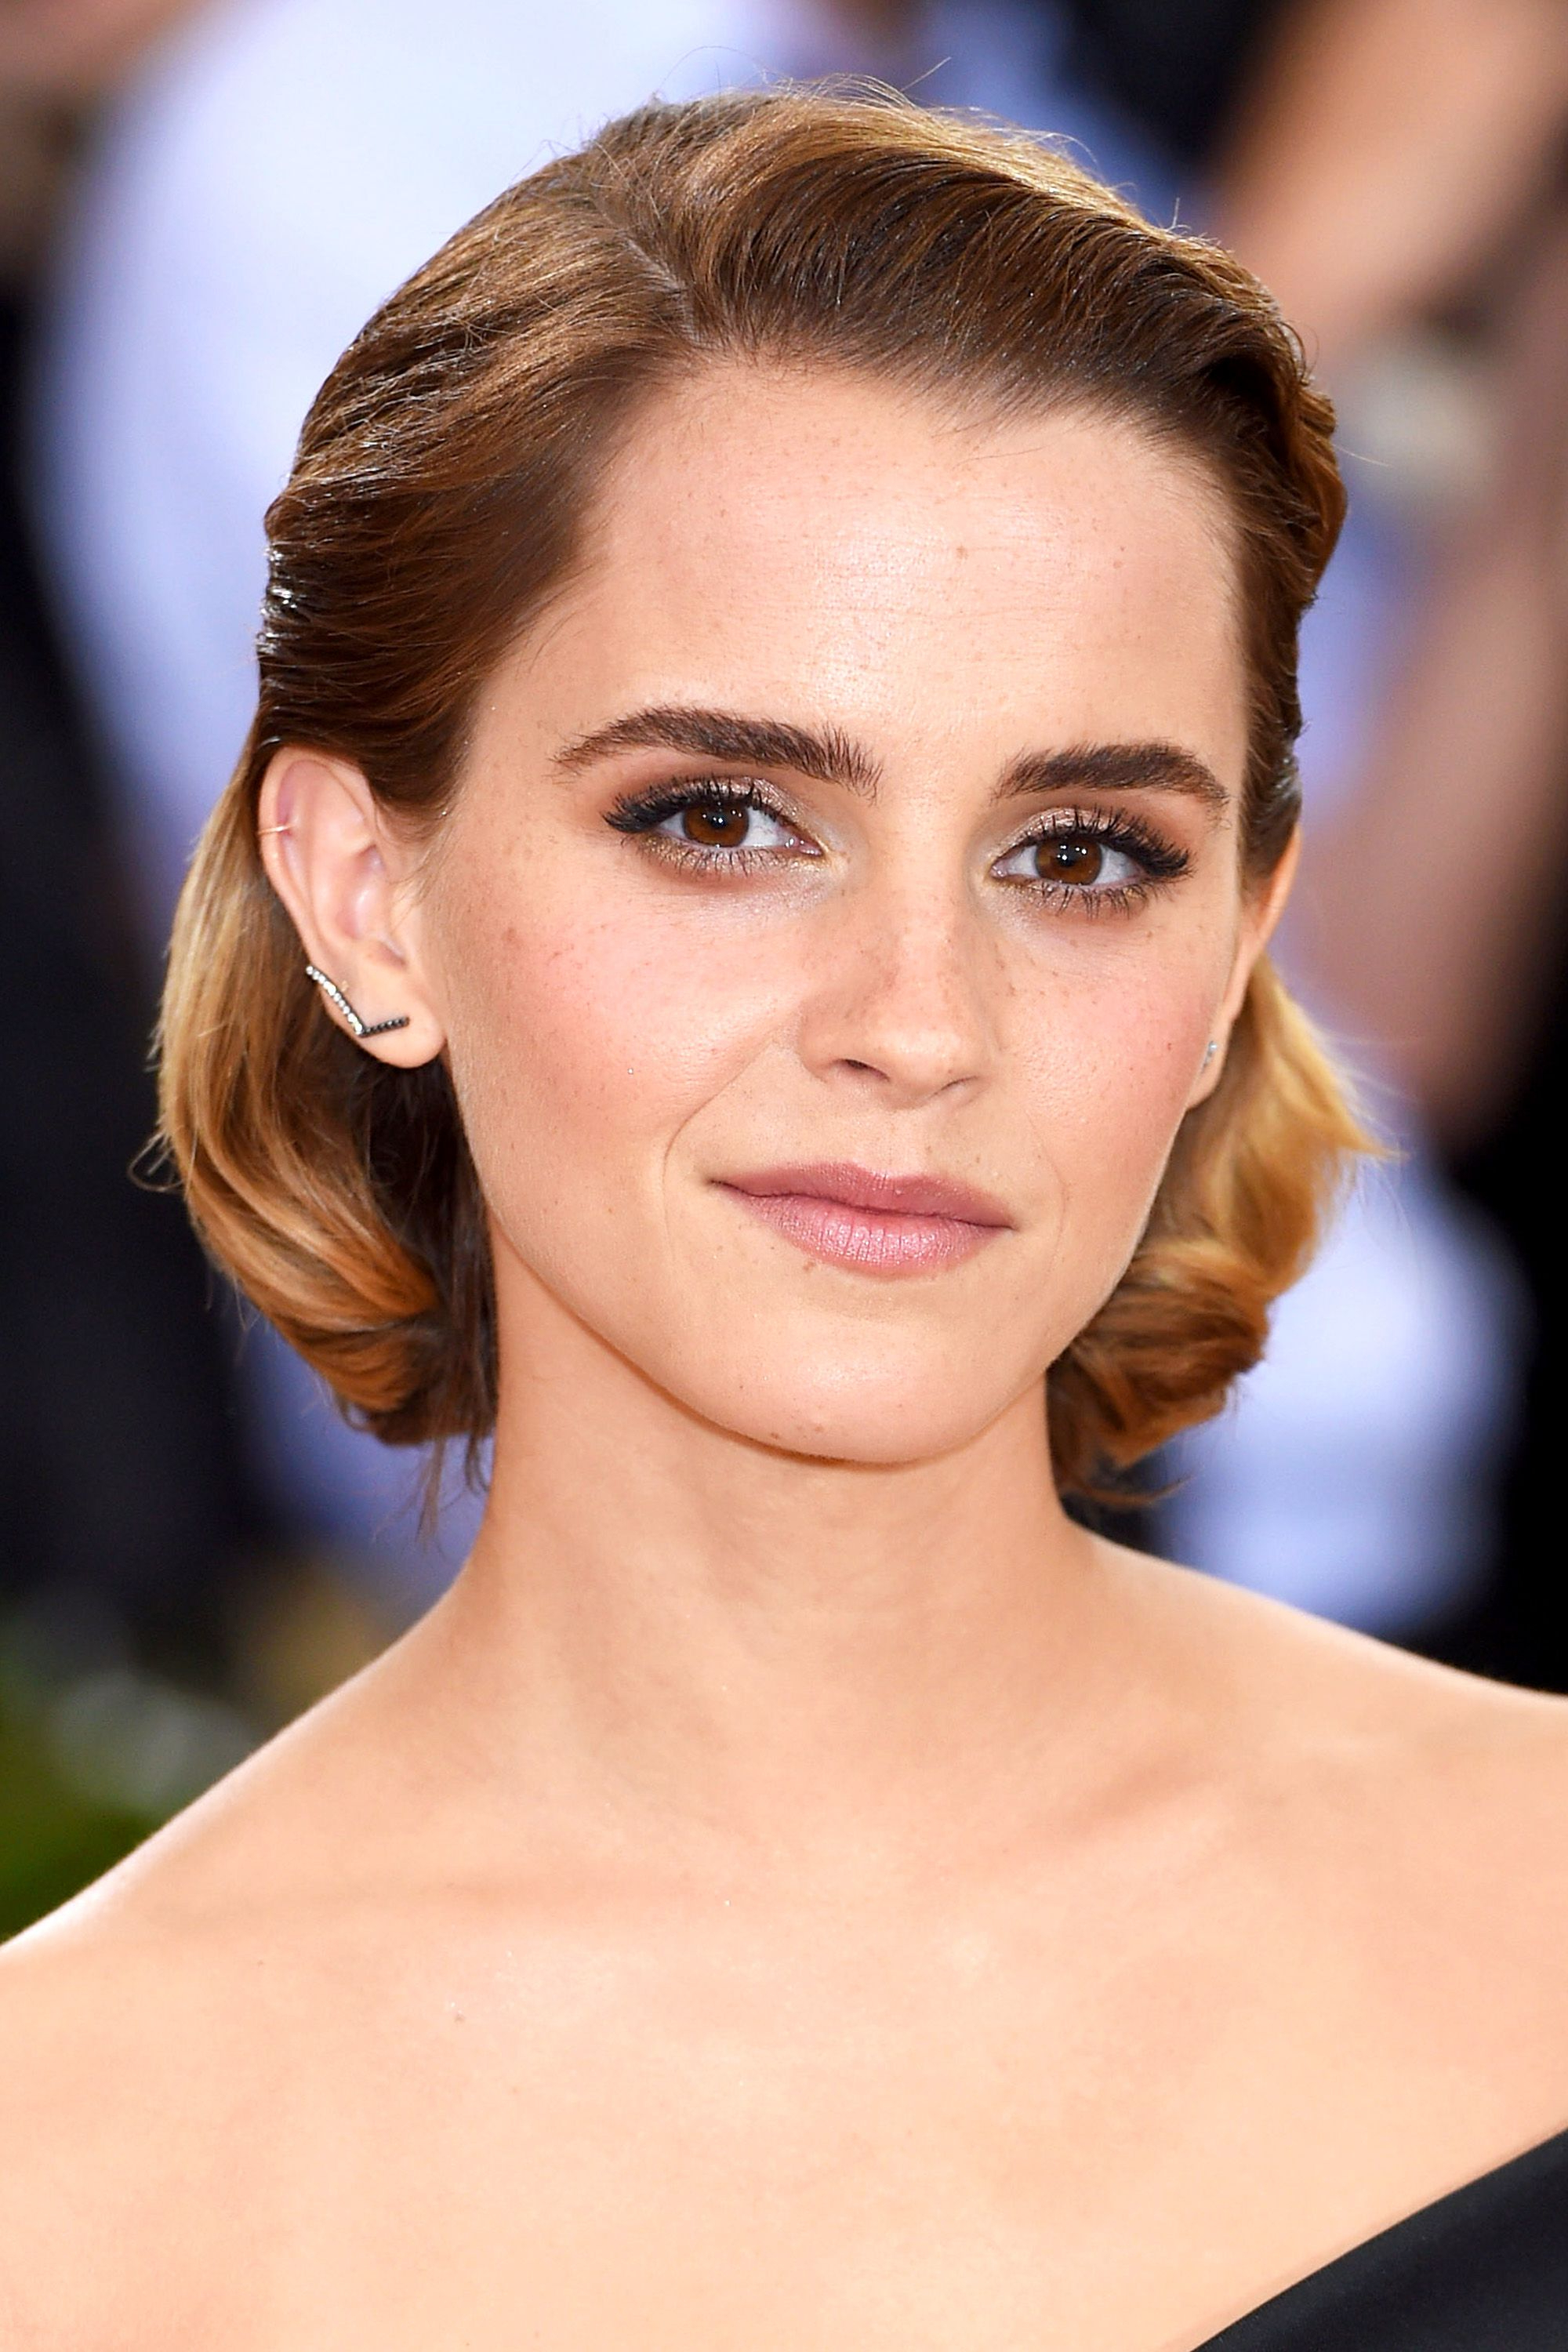 44 Best Short Hairstyles And Haircuts Of 2018 - Cute Hairstyles For within Cute Celebrity Short Haircuts